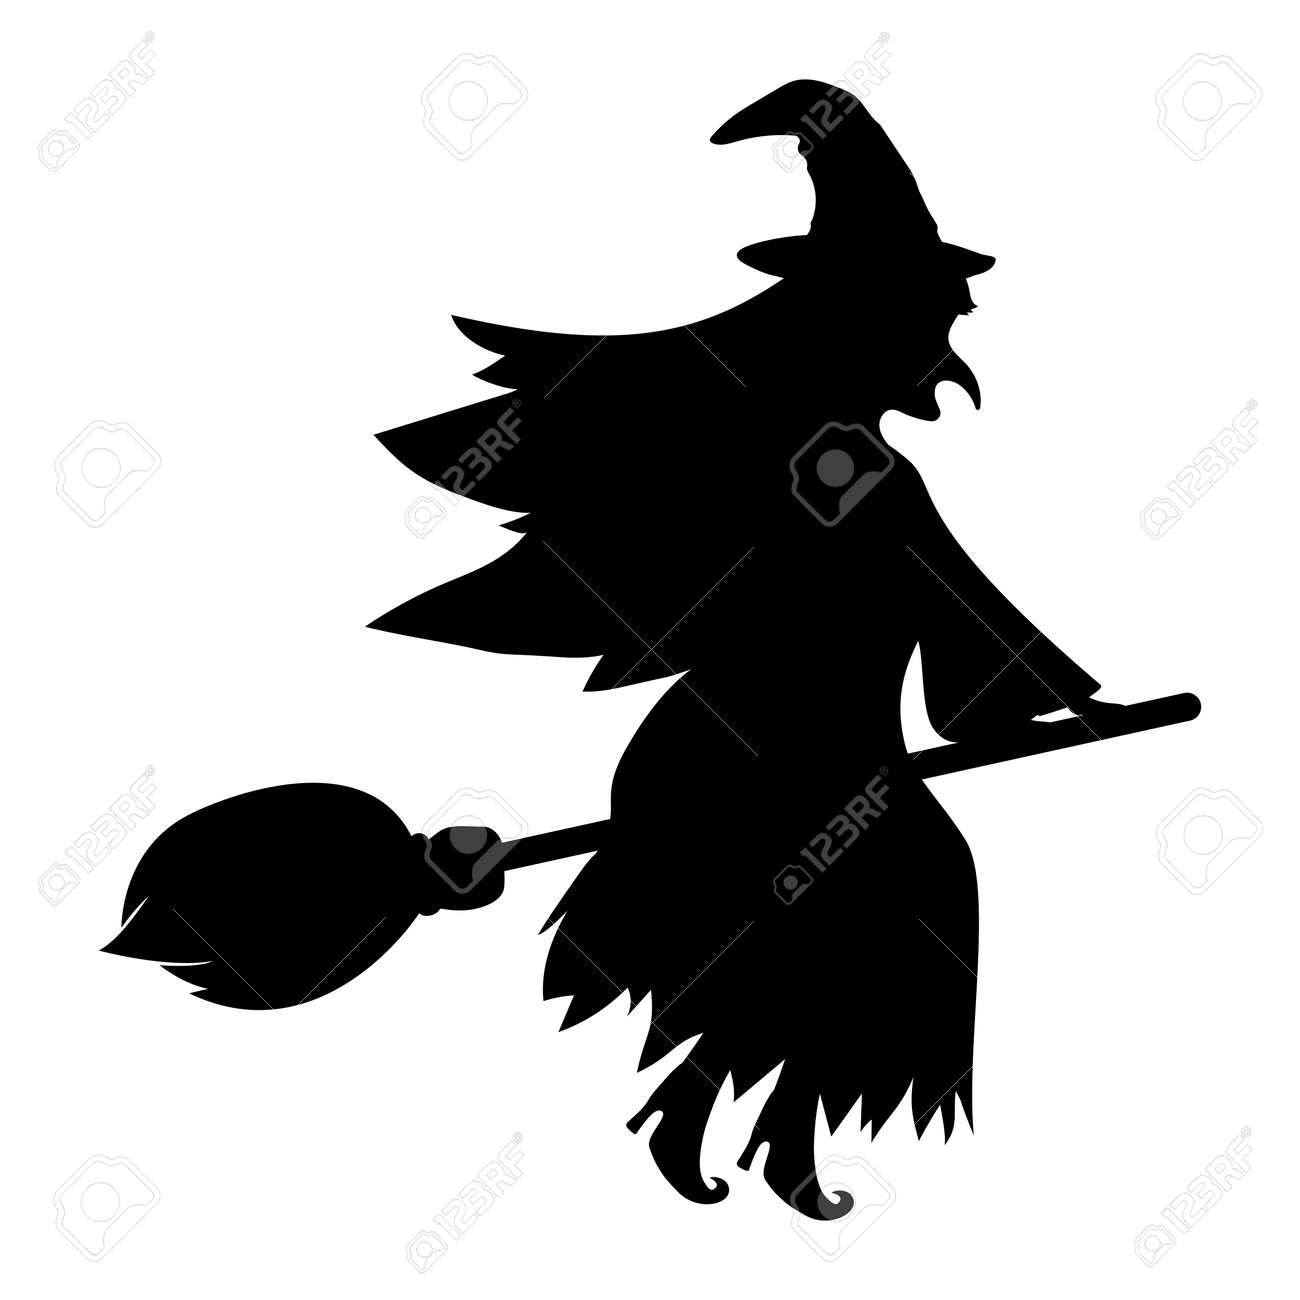 Witch with a cat on a broomstick for Halloween isolated on white - 131450089